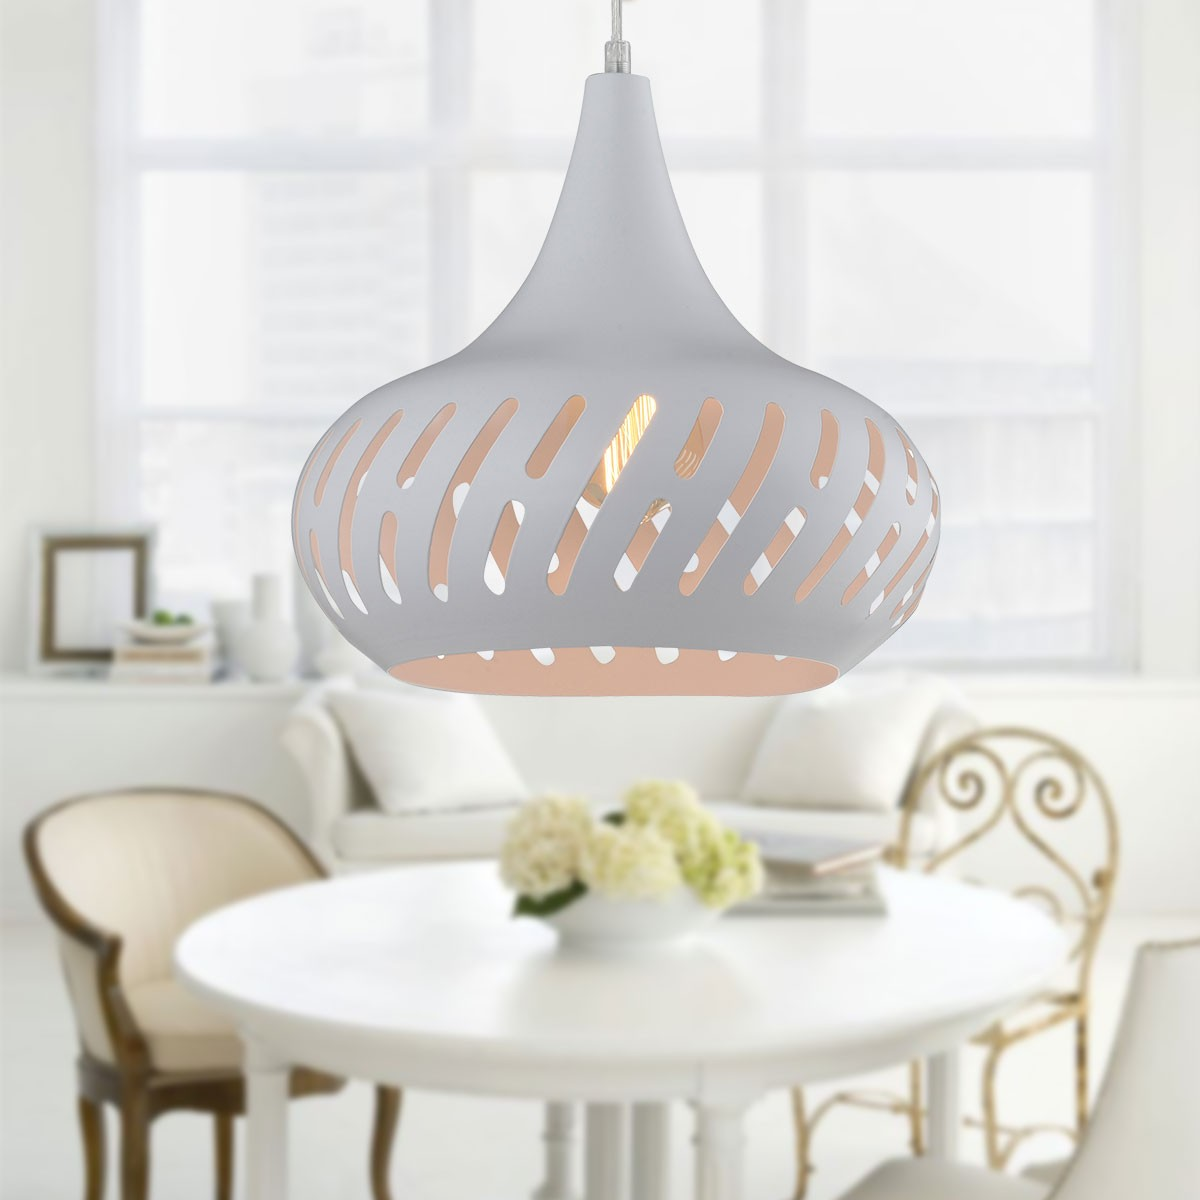 1-Light White Iron Modern Pendant Light (HKP31451-1)